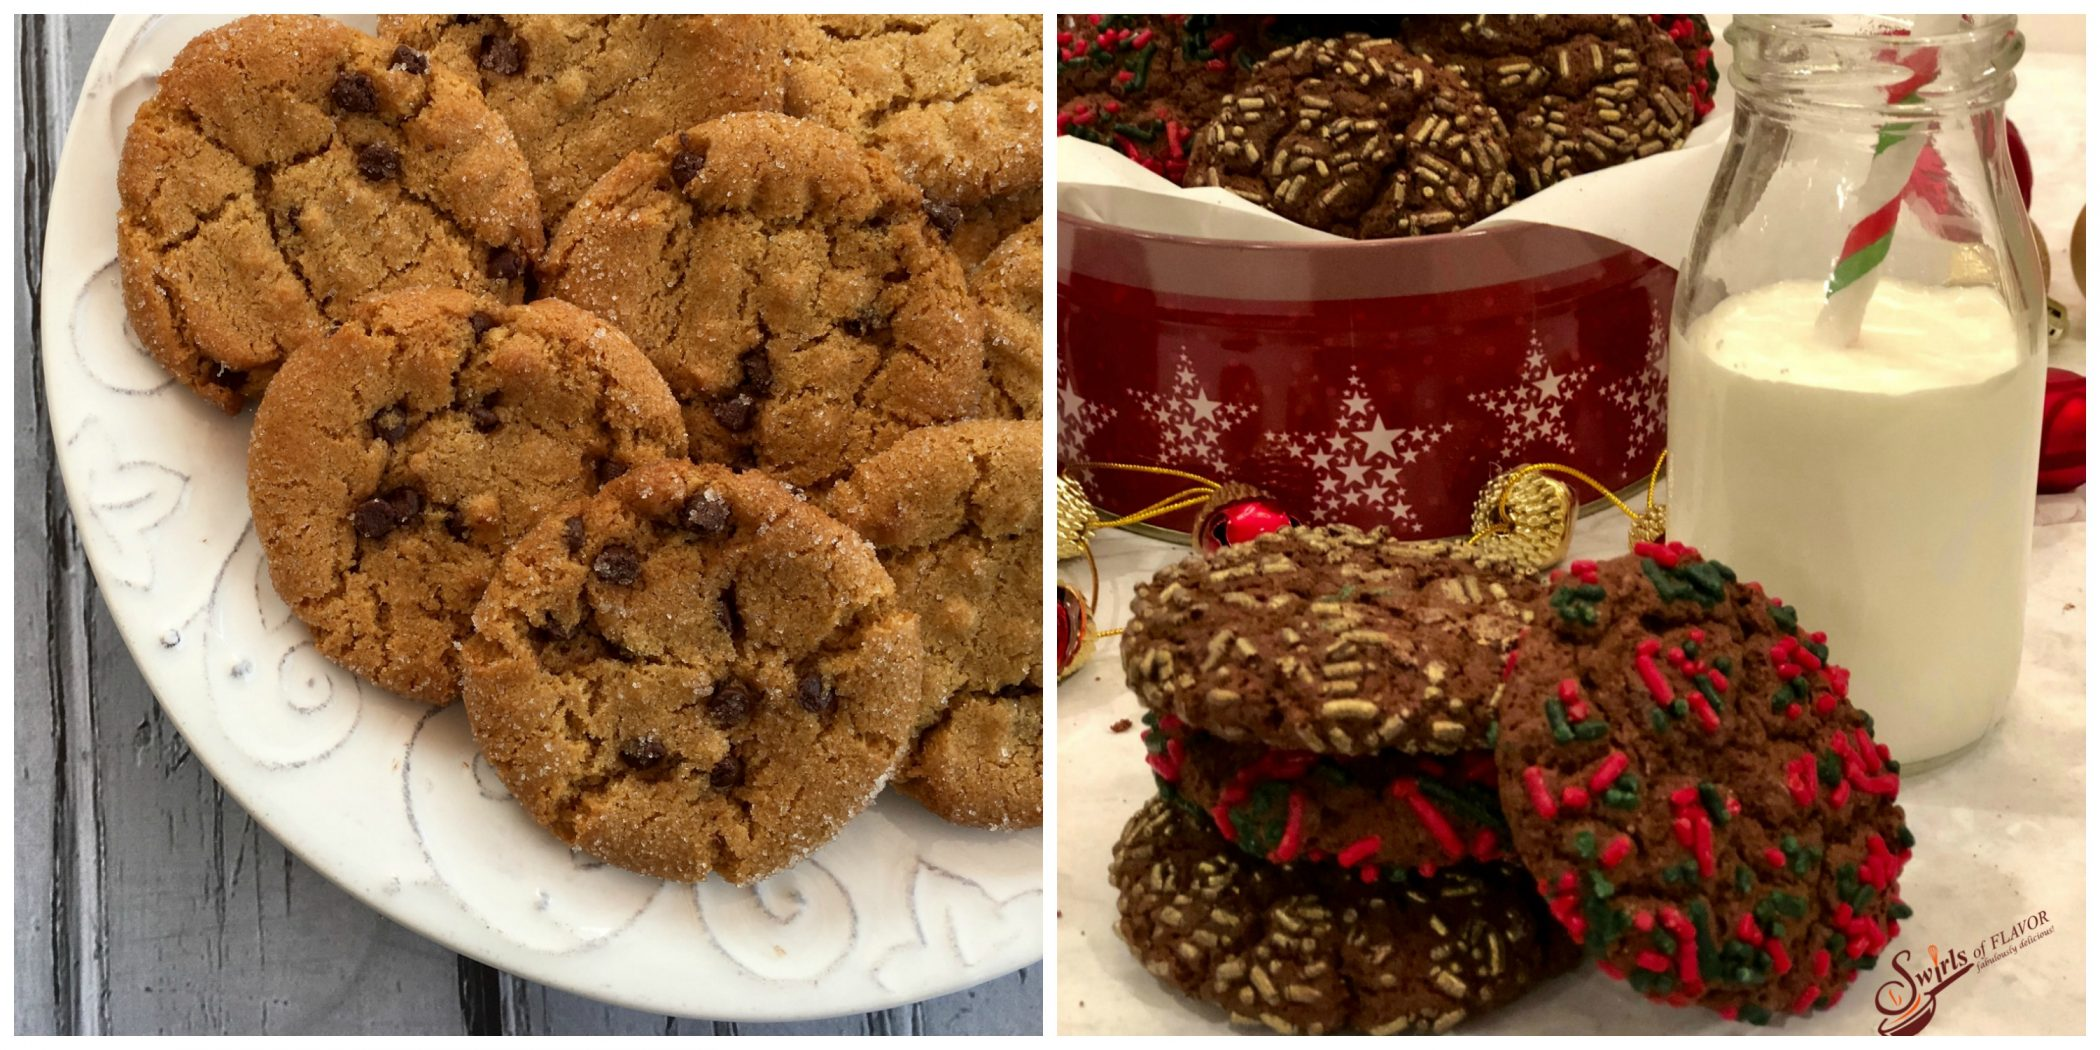 Chocolate Chip Peanut Butter Cookies and Espresso Chocolate Cookies